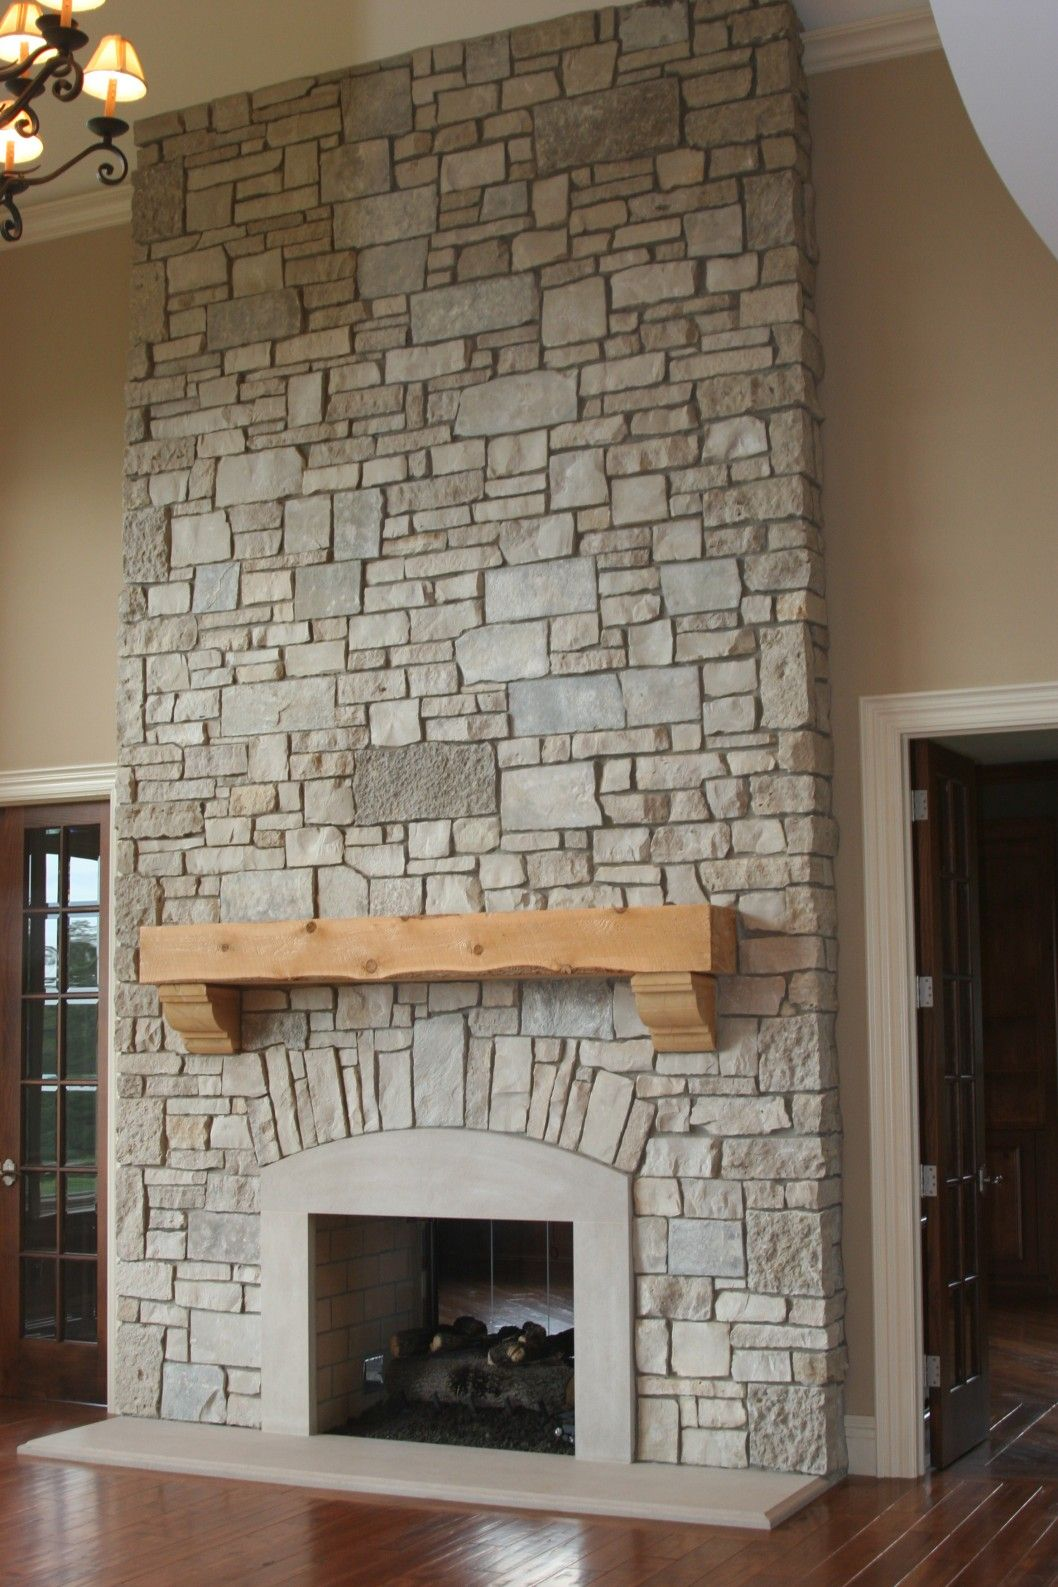 Architecture Stone Fireplace Ideas Wood Mantels Living Room Wall Tiles Cast